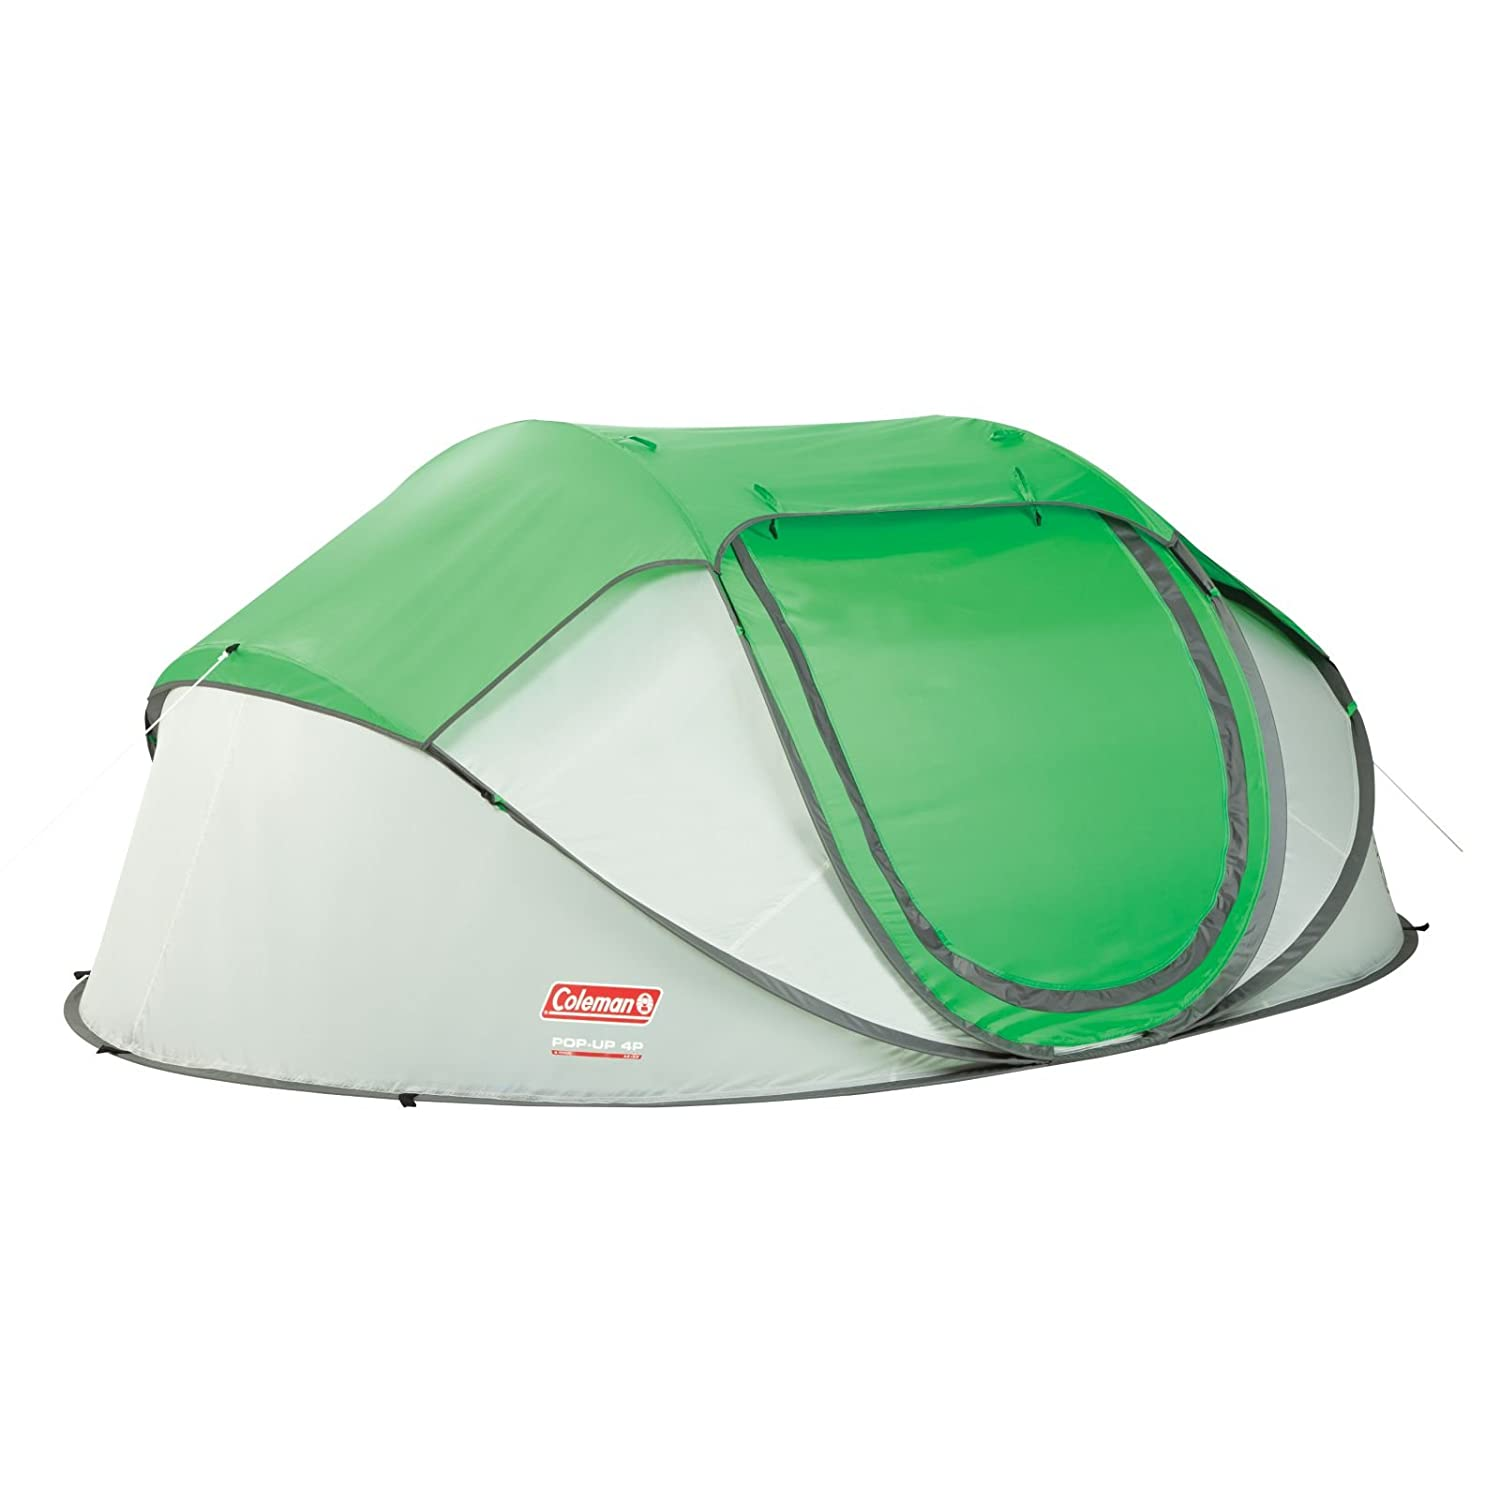 Coleman Pop-Up Tent – Lightweight but takes practice